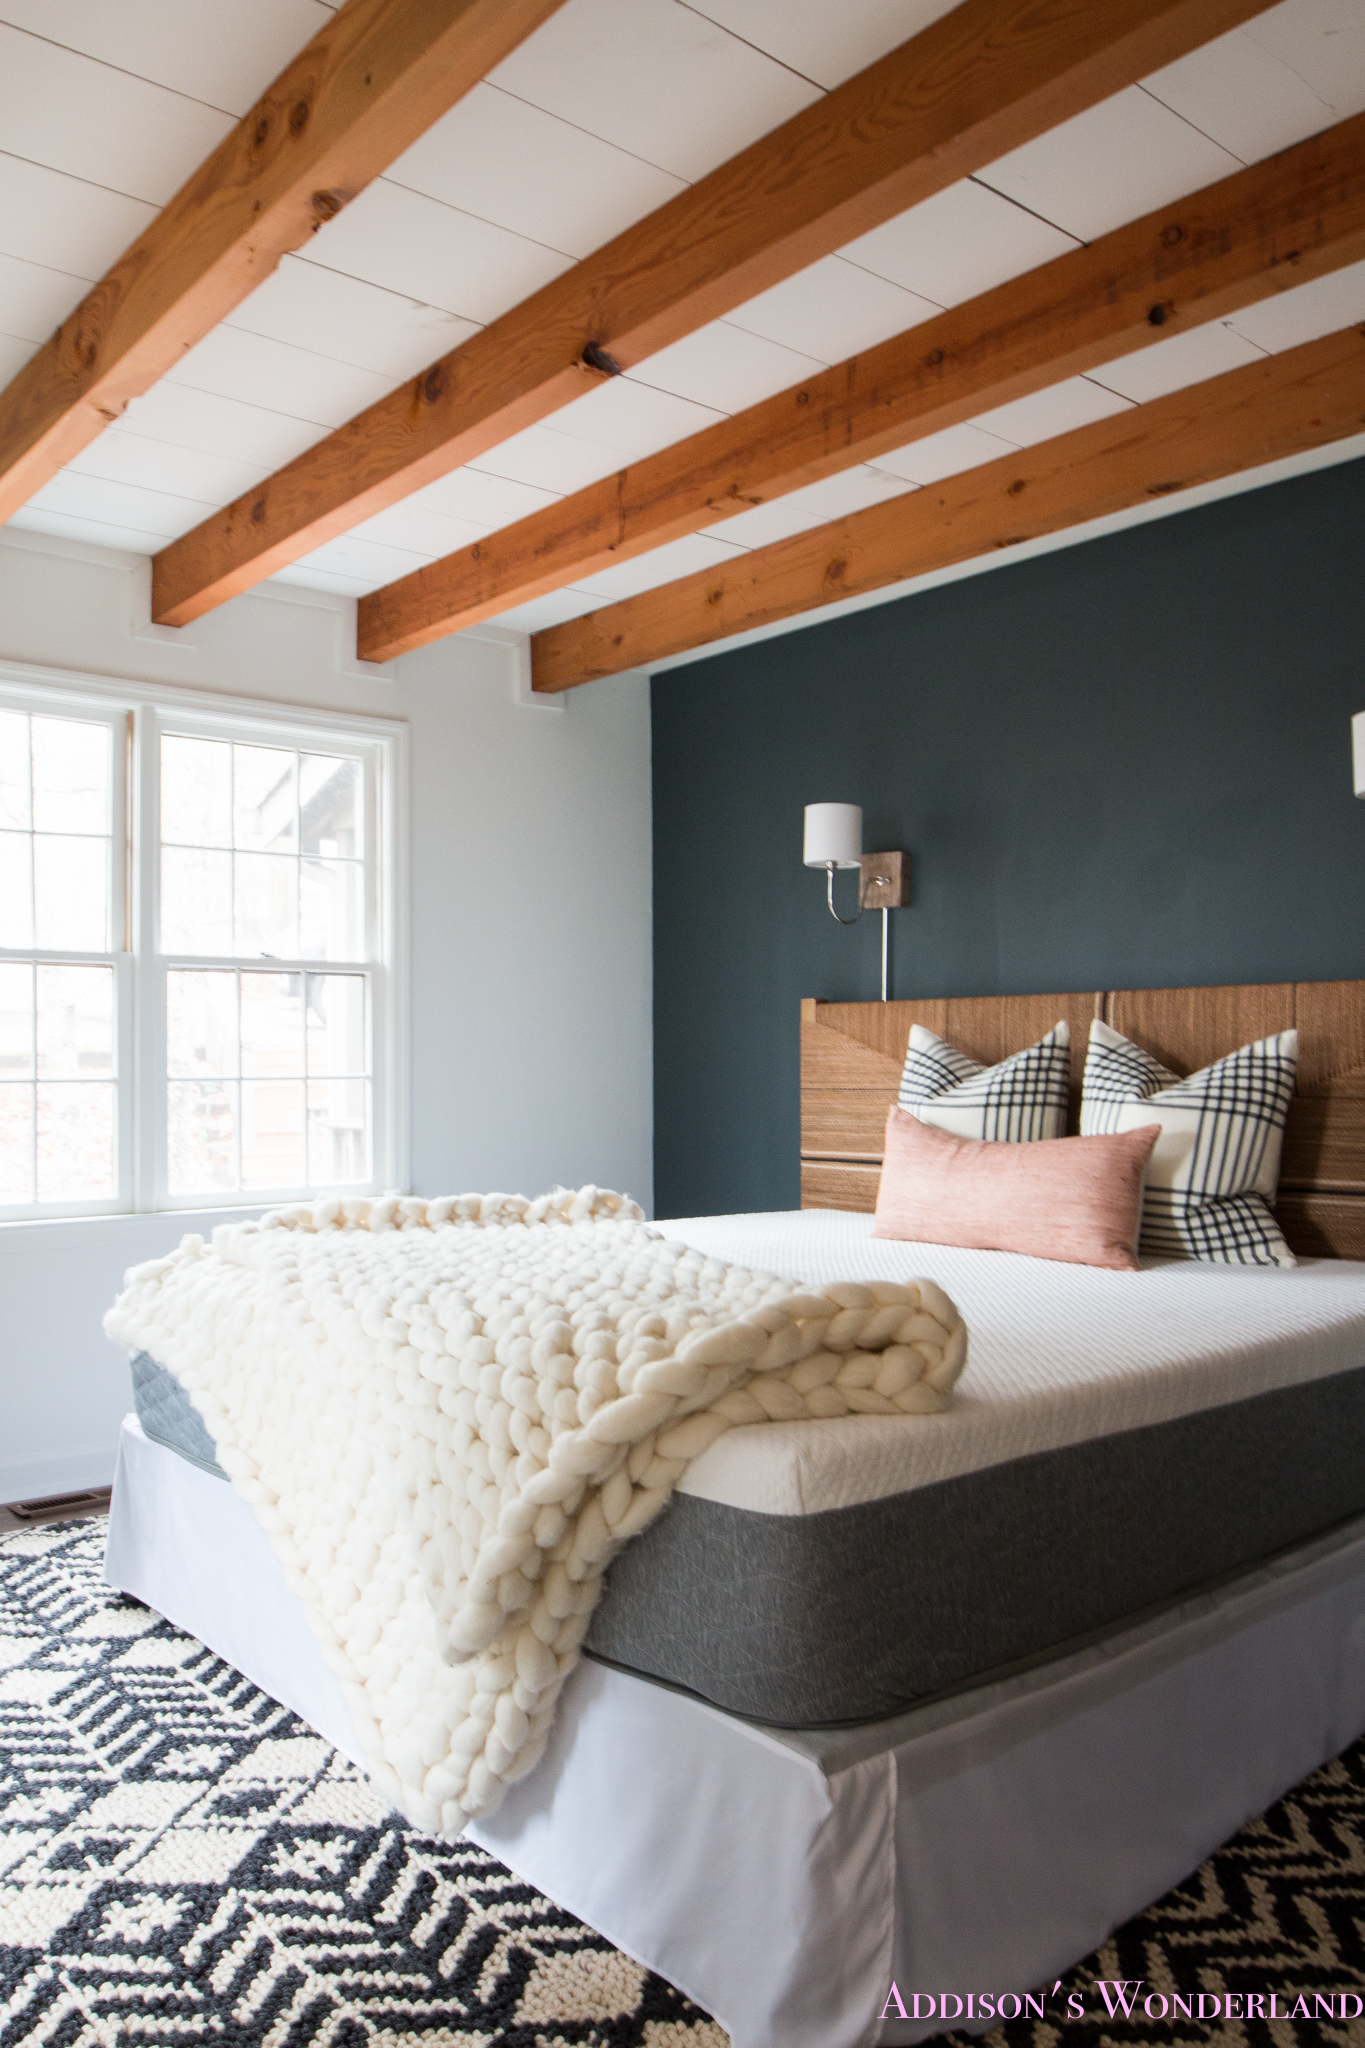 A Peek Inside Our Cabin's Master Bedroom Makeover w/ Serena & Lily!